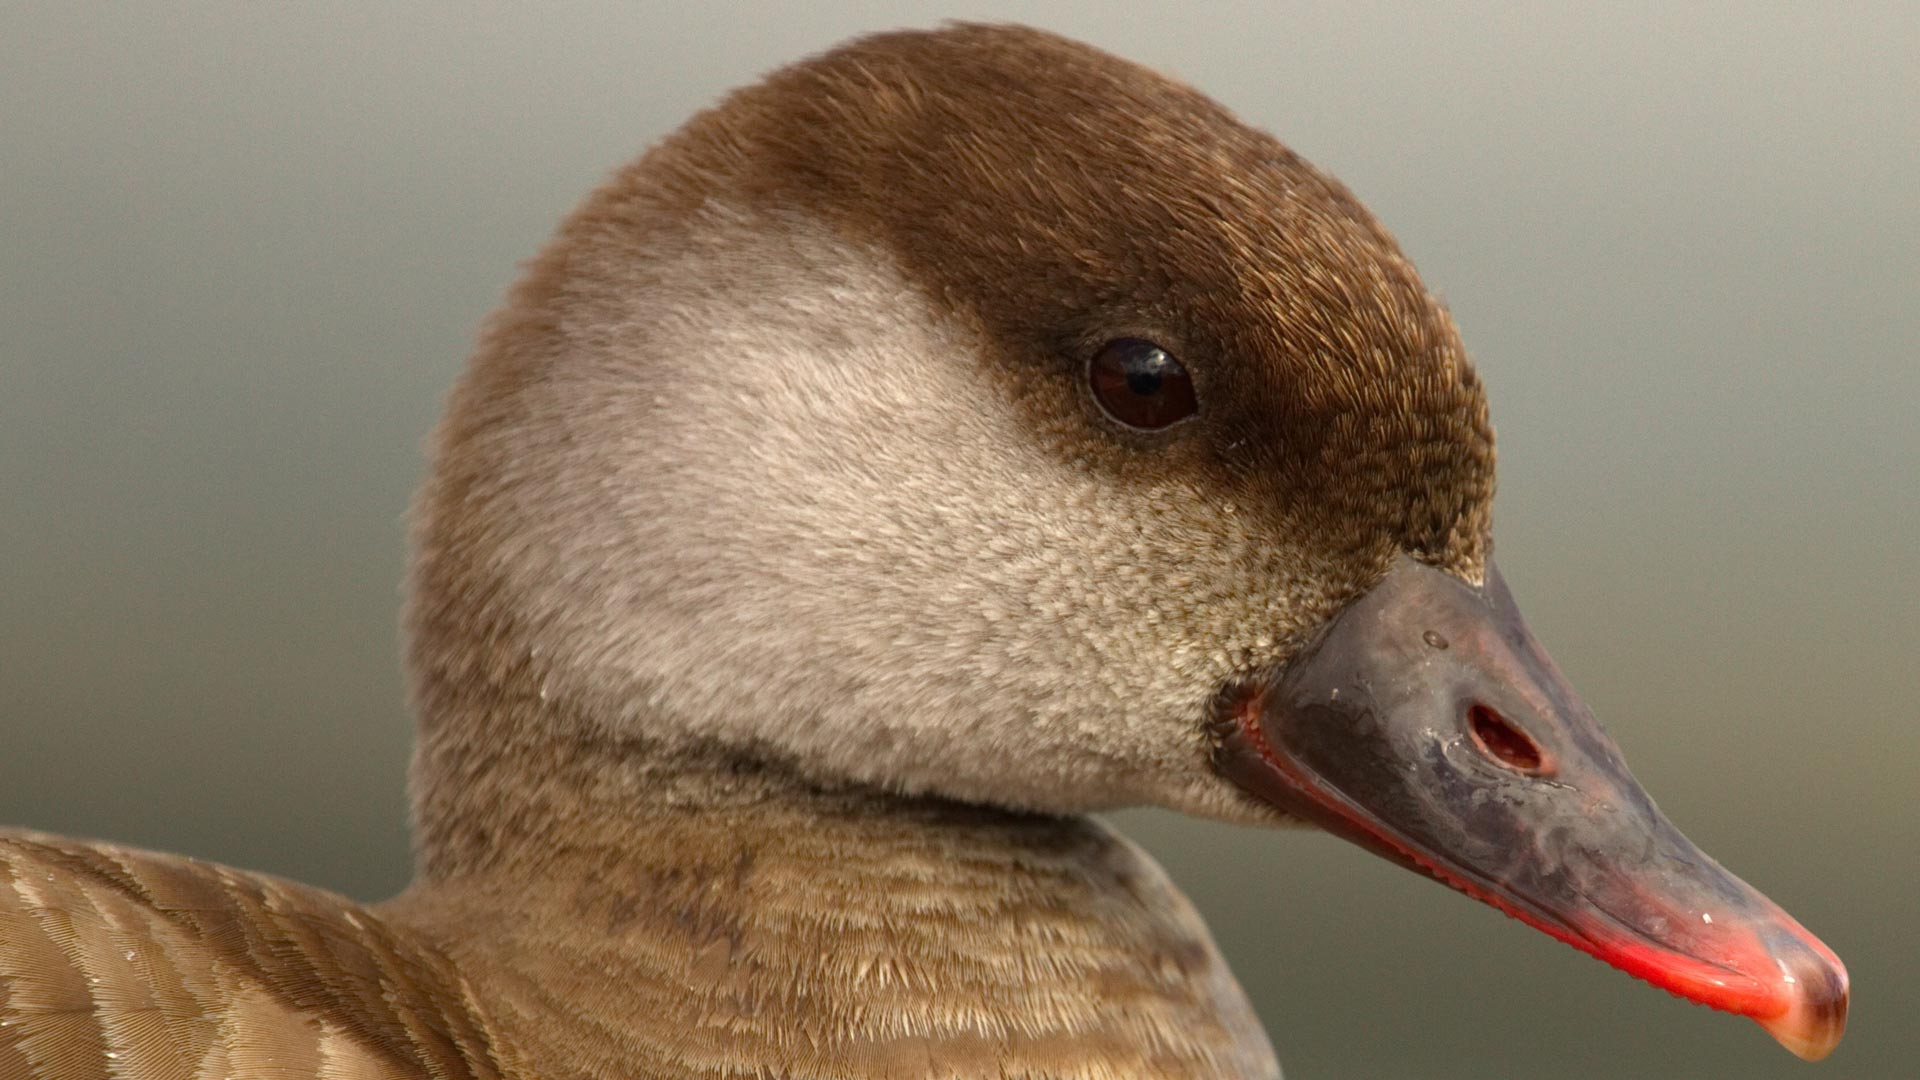 Red-crested female pochard duck, netta rufina, portrait